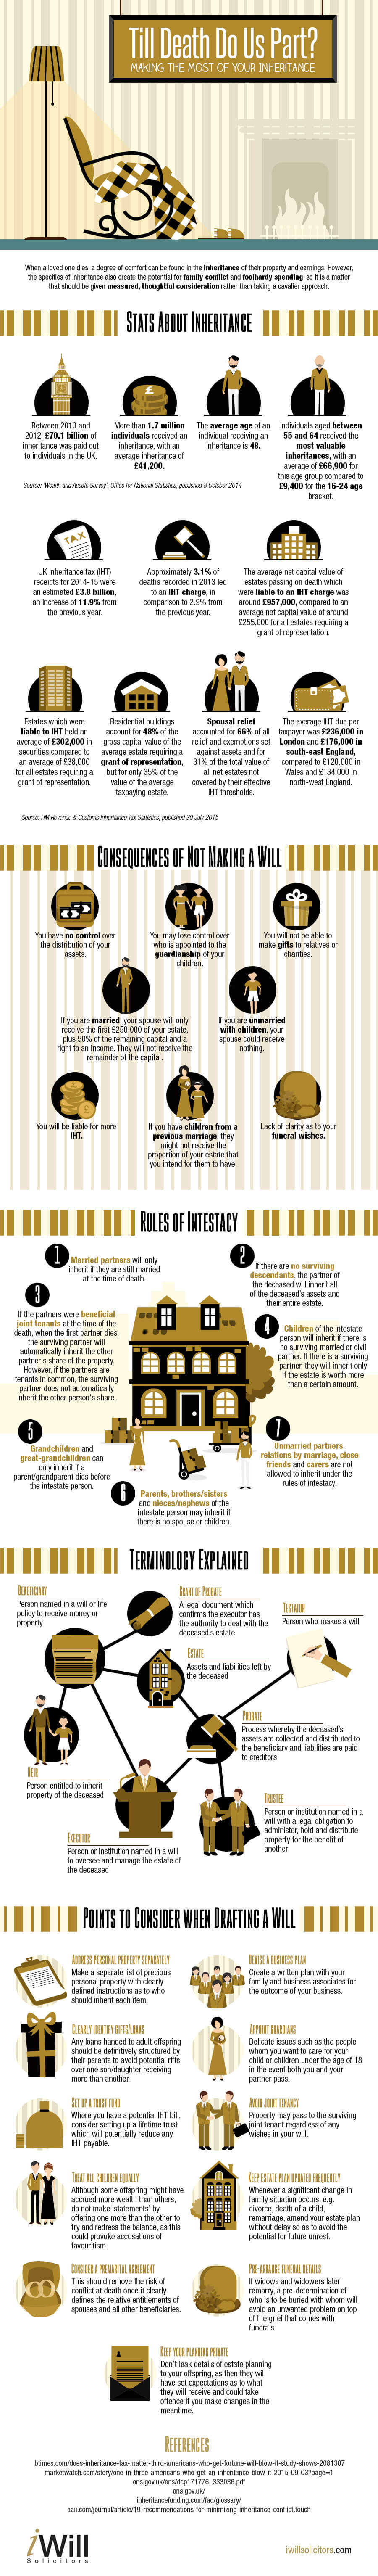 Making-the-Most-of-Your-Inheritance-infographic